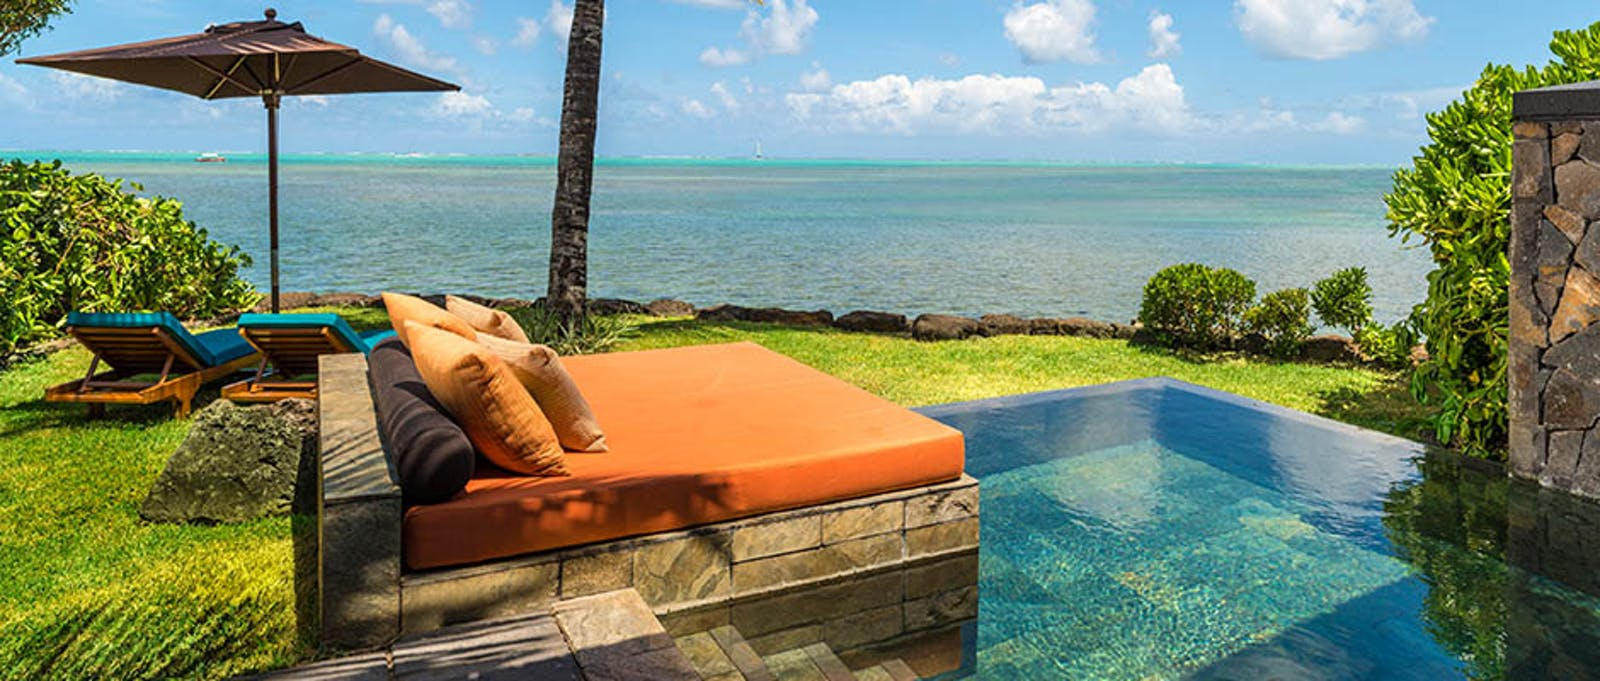 Ocean View Suite at Four Seasons Resort Mauritius at Anahita